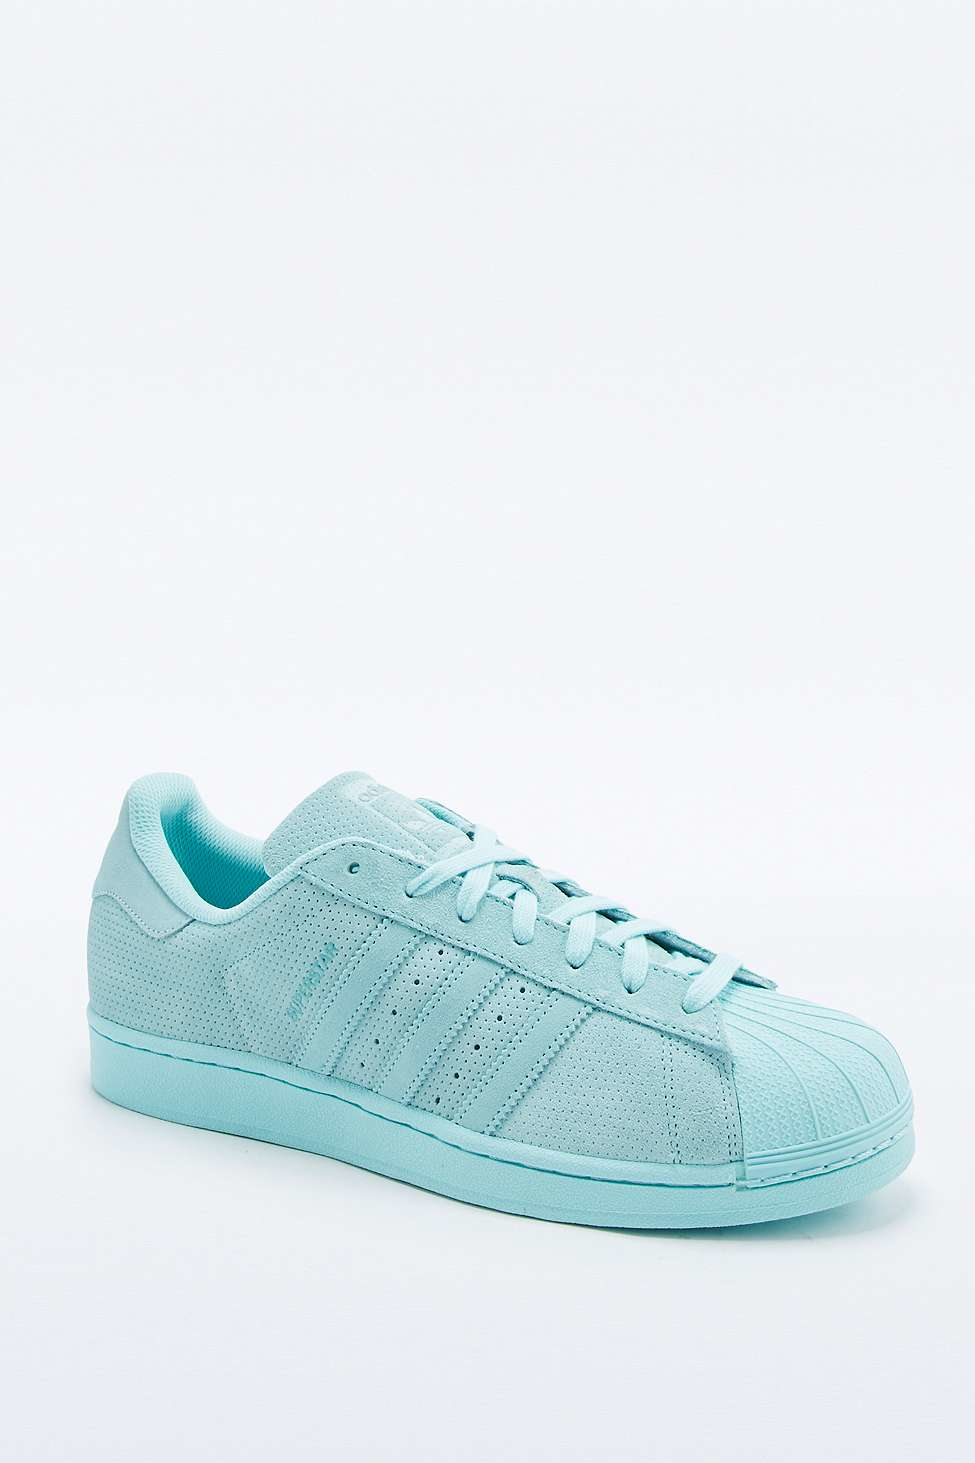 competitive price 68638 ff5d7 adidas Originals Superstar Rt Monotone Aqua Suede Trainers in Blue ...